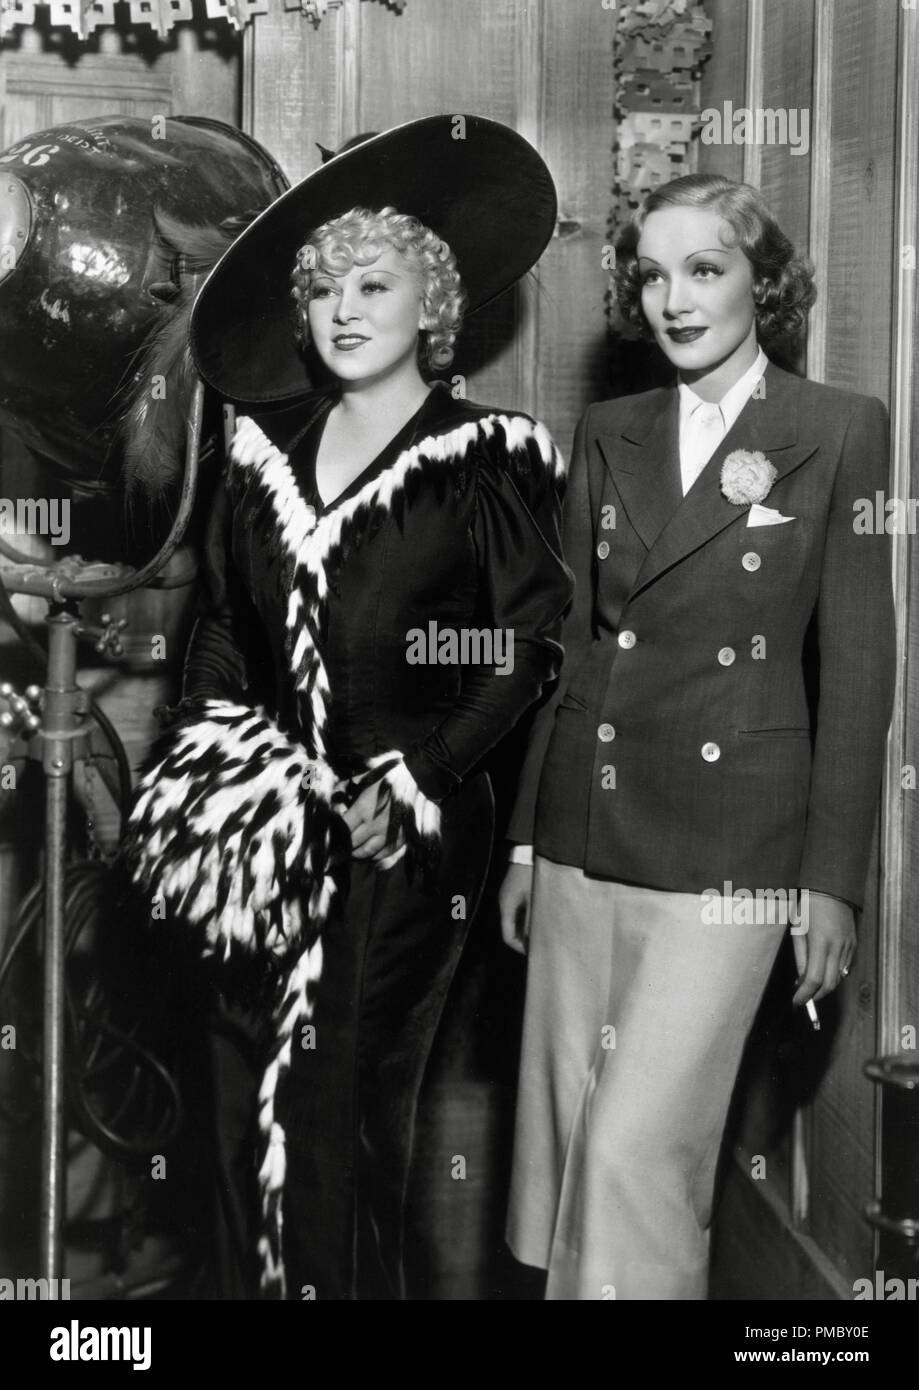 Mae West and Marlene Dietrich, circa 1936 File Reference # 33300_207THA - Stock Image